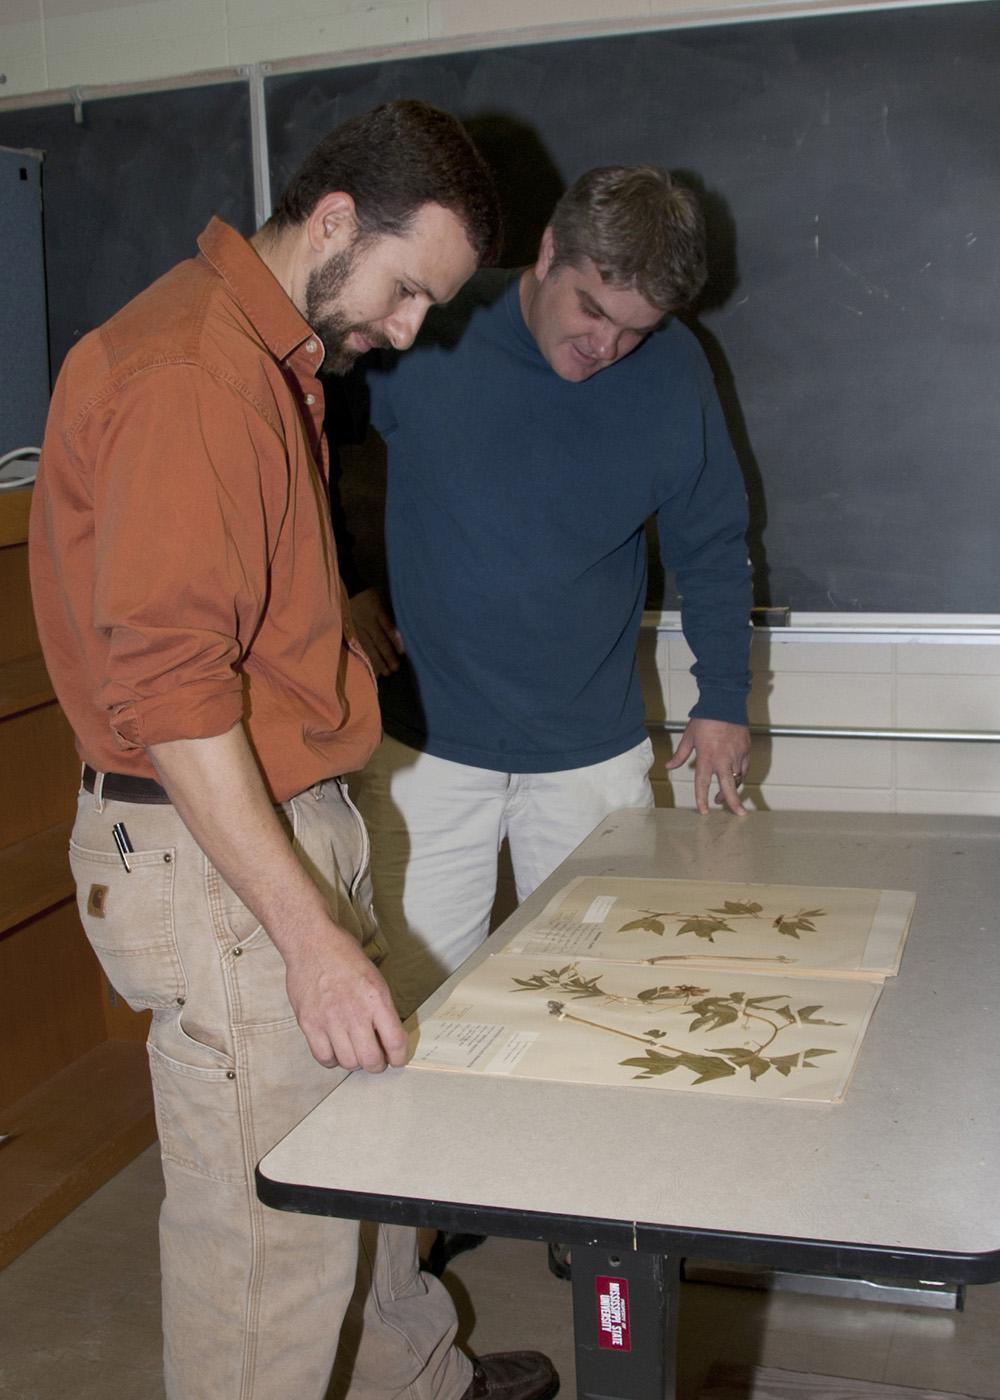 JoVonn Hill, left, and Chris Doffitt helped catalog the plant life in Lauderdale County. They used a variety of sources, including collections at Mississippi State University's Herbarium, to identify the plants they found. (Photo by Kat Lawrence)